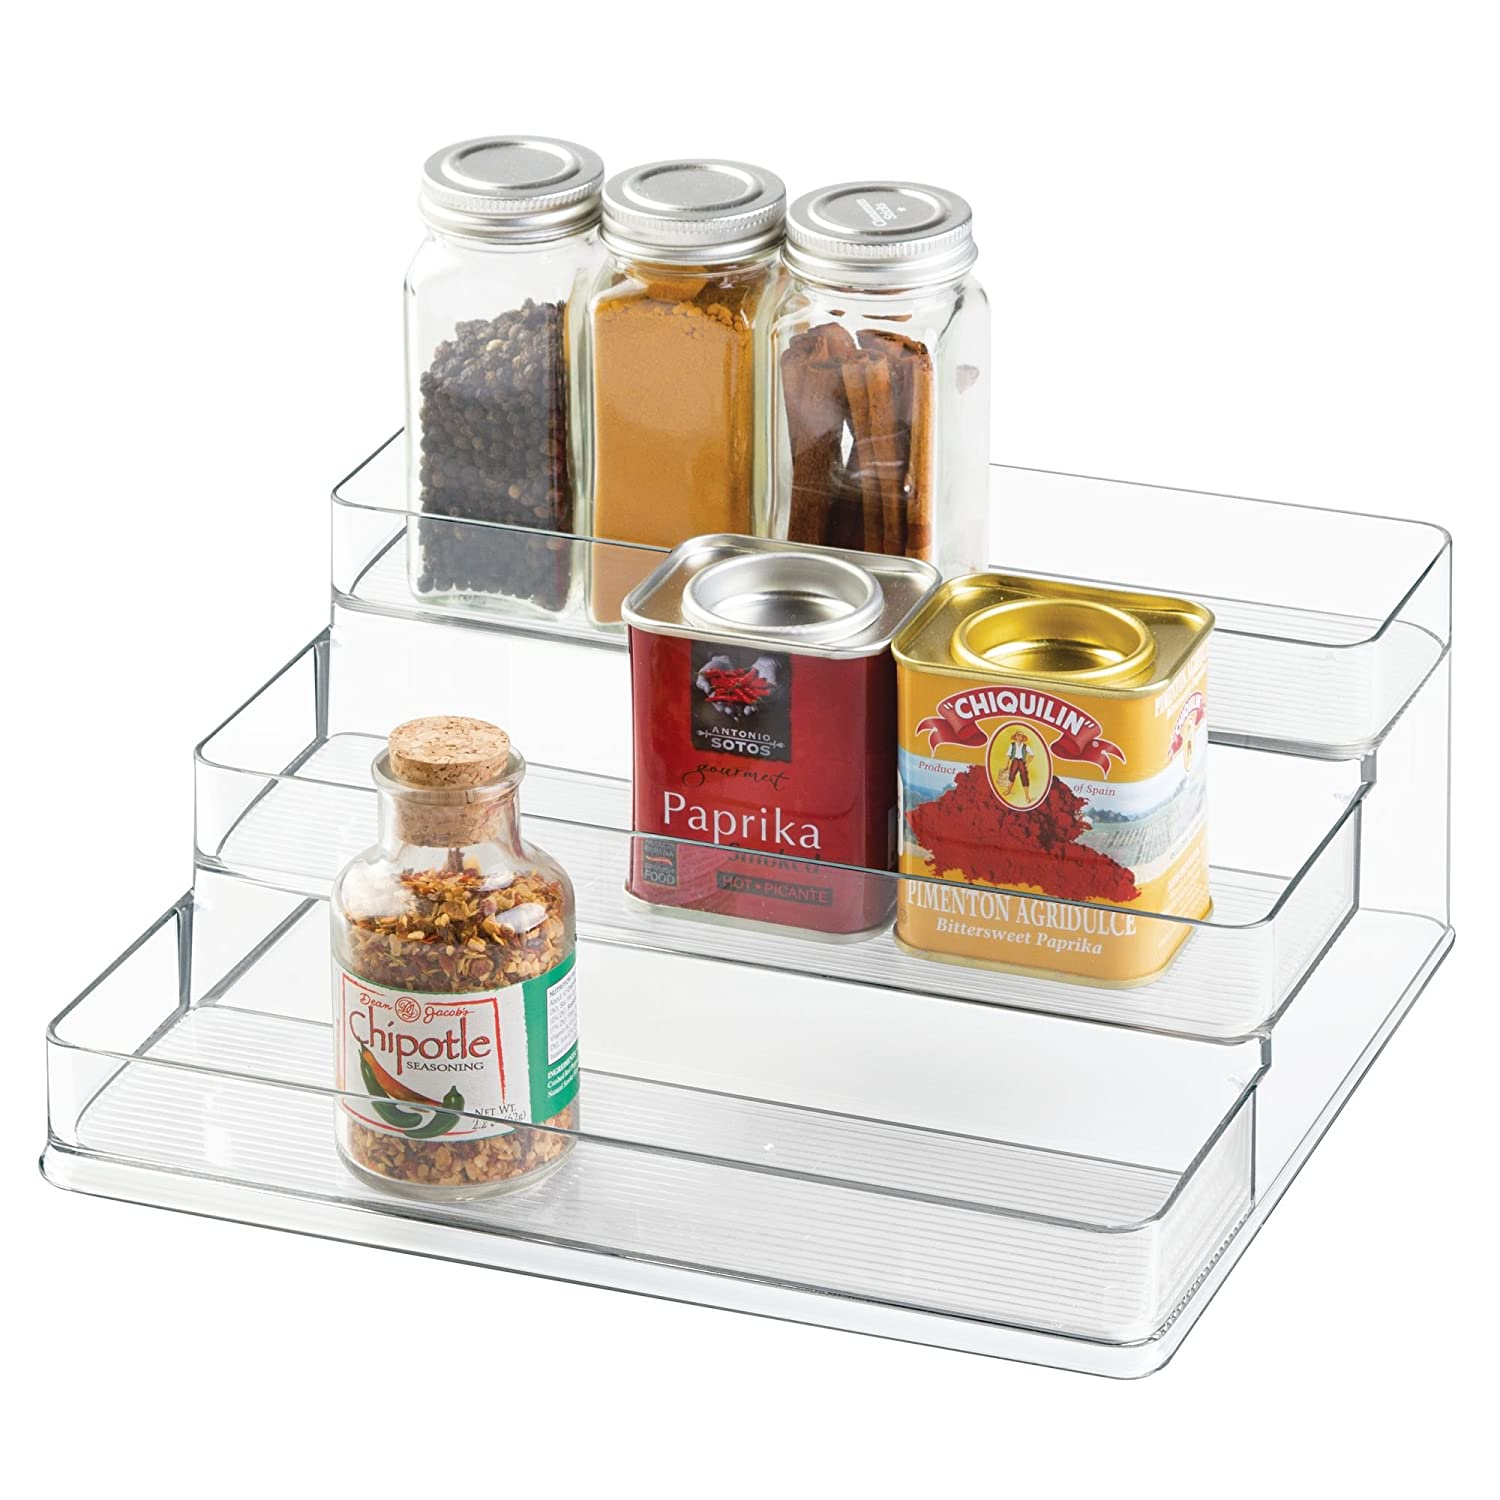 InterDesign Linus Spice Rack Cabinet Organizer for Kitchen Pantry 3-Tier Large Countertops Clear